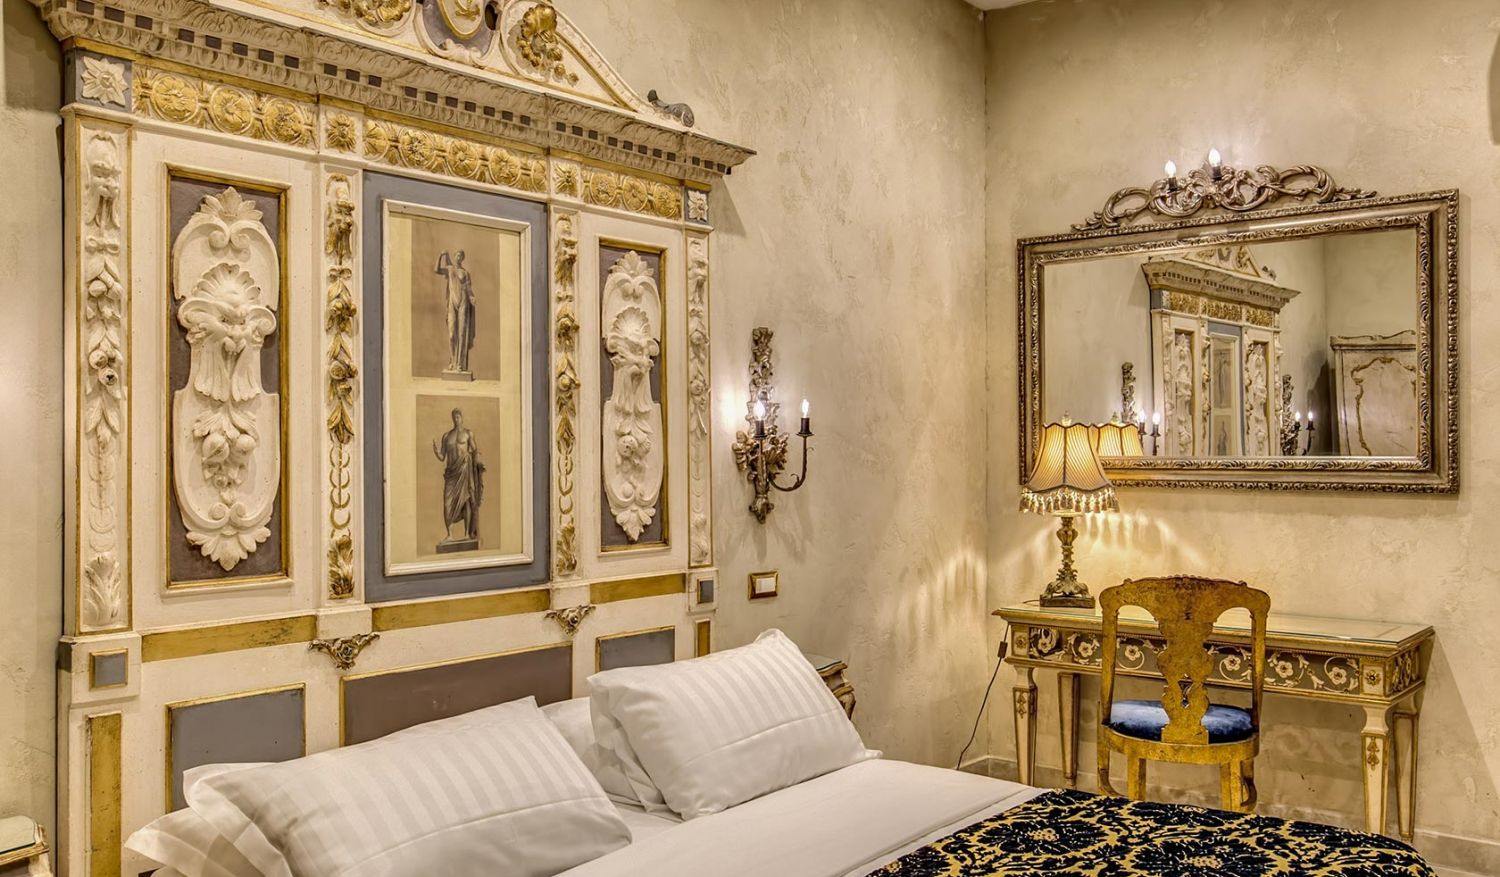 Cozy budget rooms to stay in the center of Rome